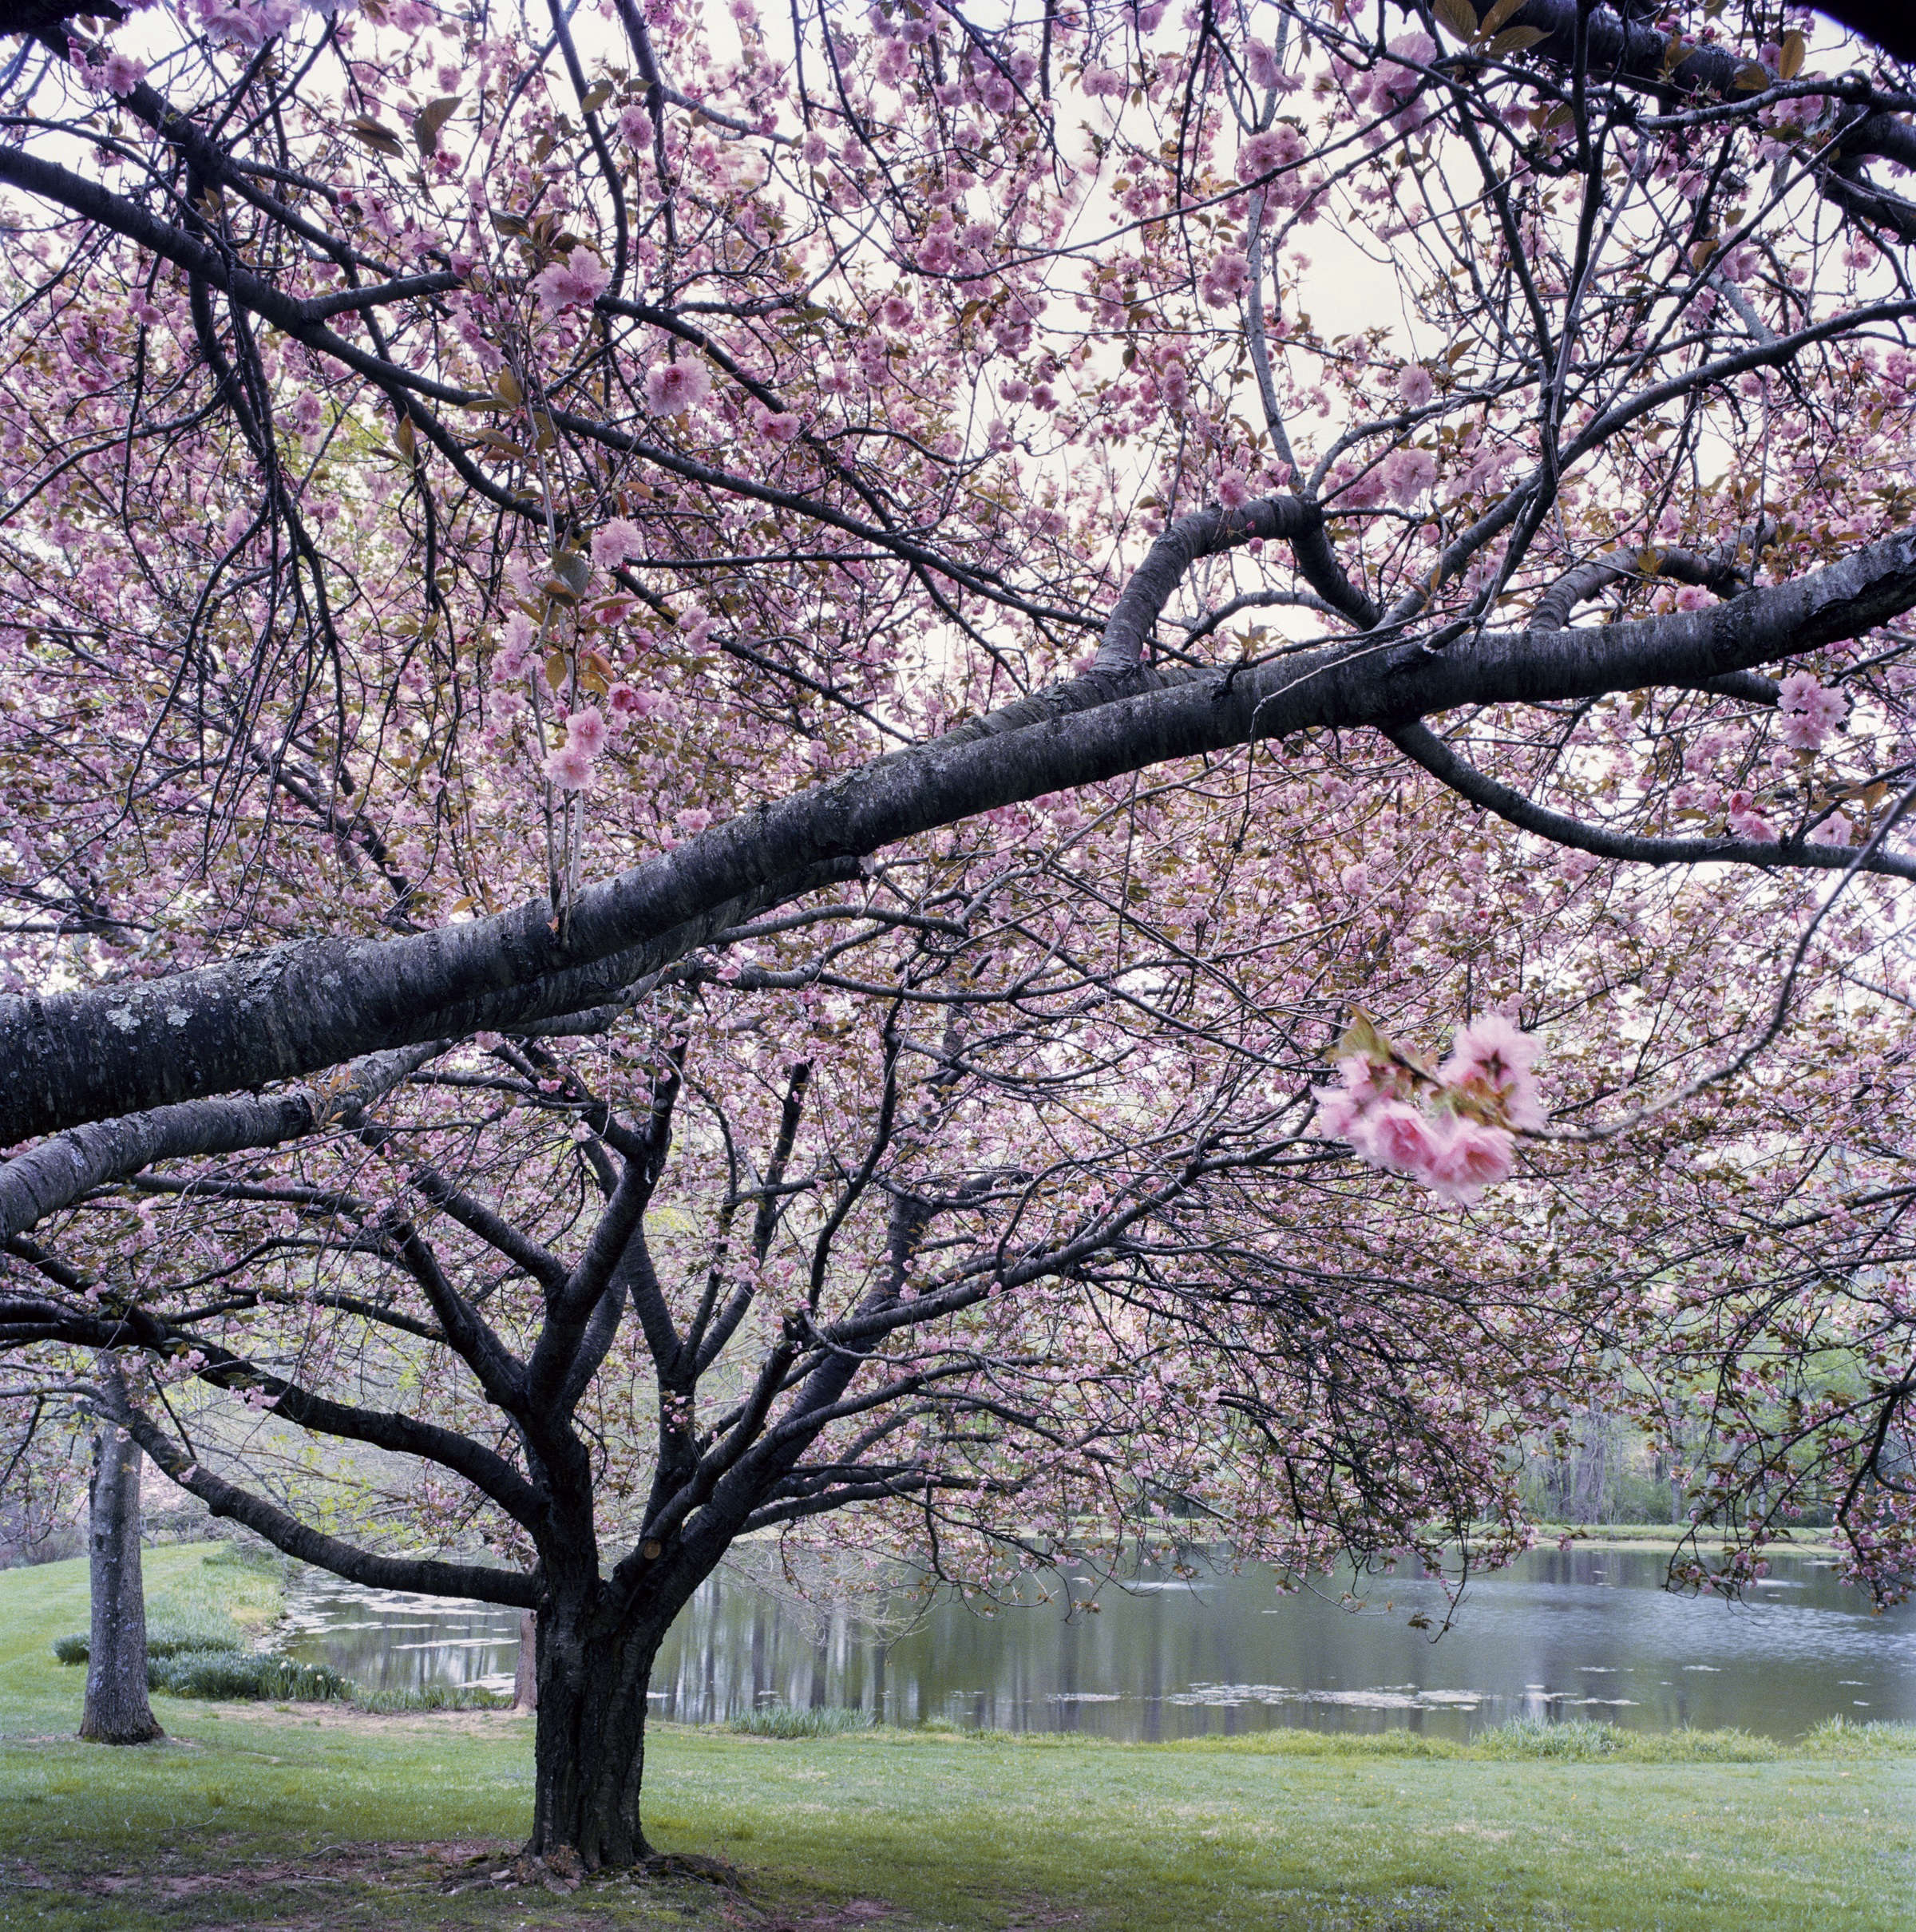 Everything you need to know about flowering trees gardenista thank you flowering trees for alerting us to the fact that it is definitely spring we might have missed that development if not for the sudden mightylinksfo